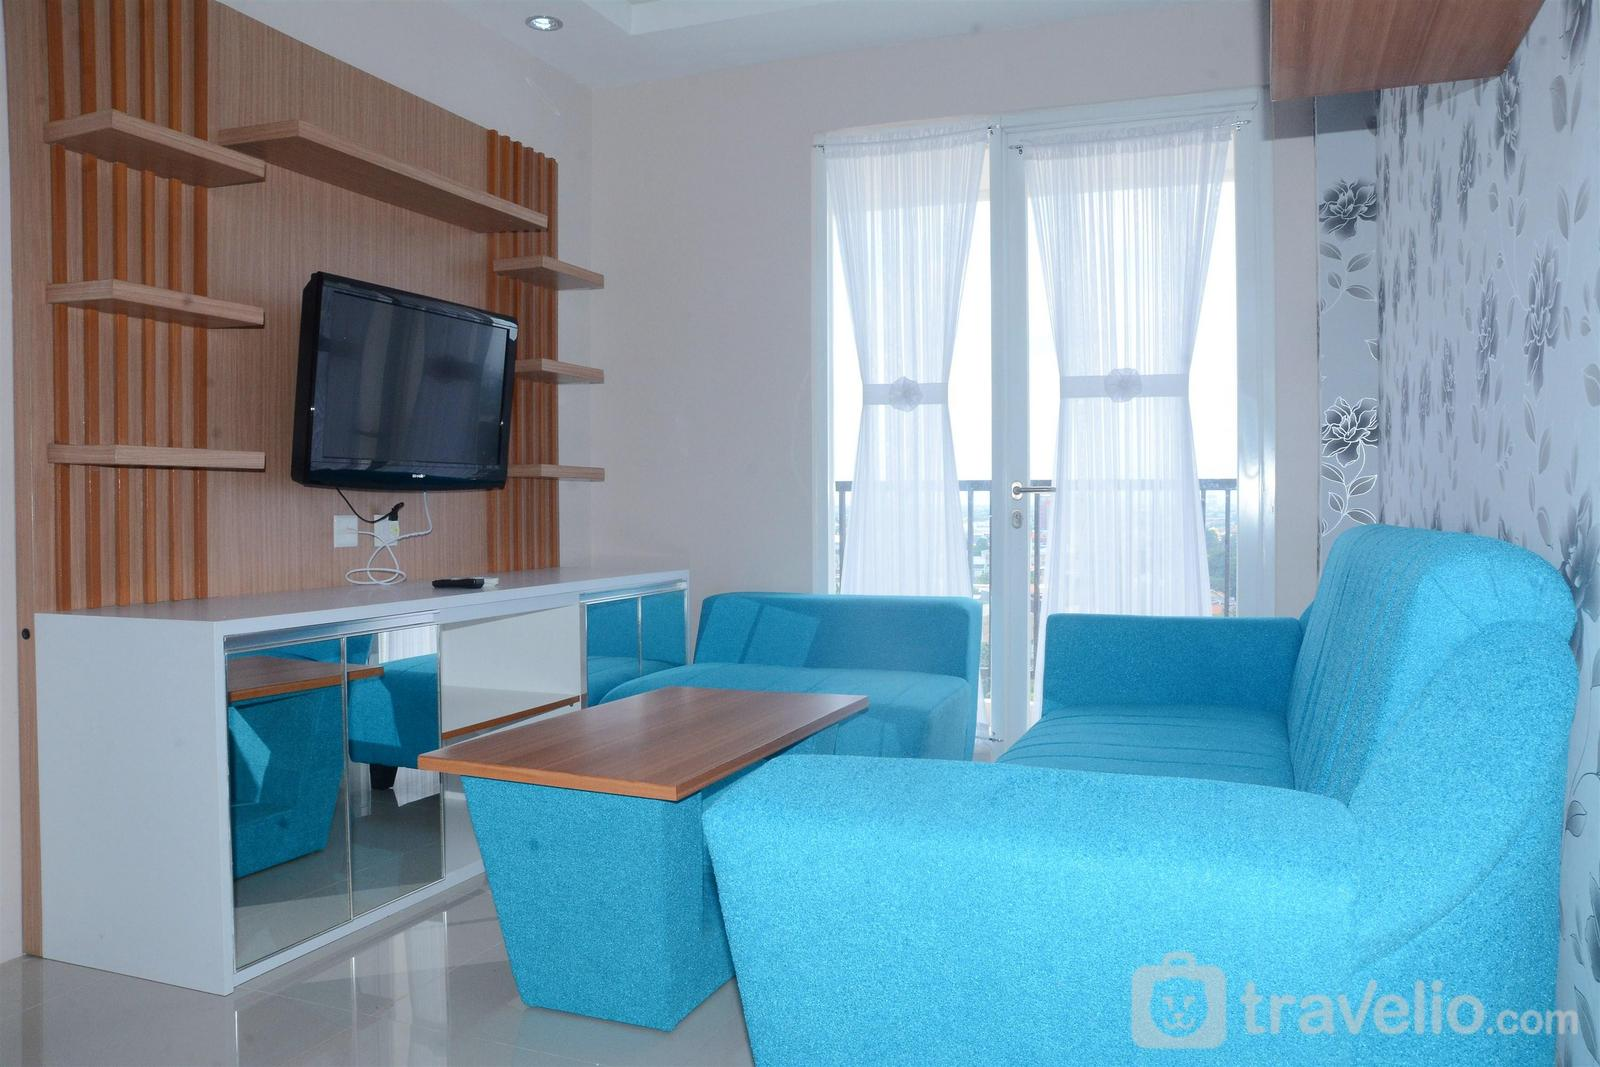 Signature Park Grande M.T Haryono - Spacious 2BR Apartment Signature Park Grande By Travelio